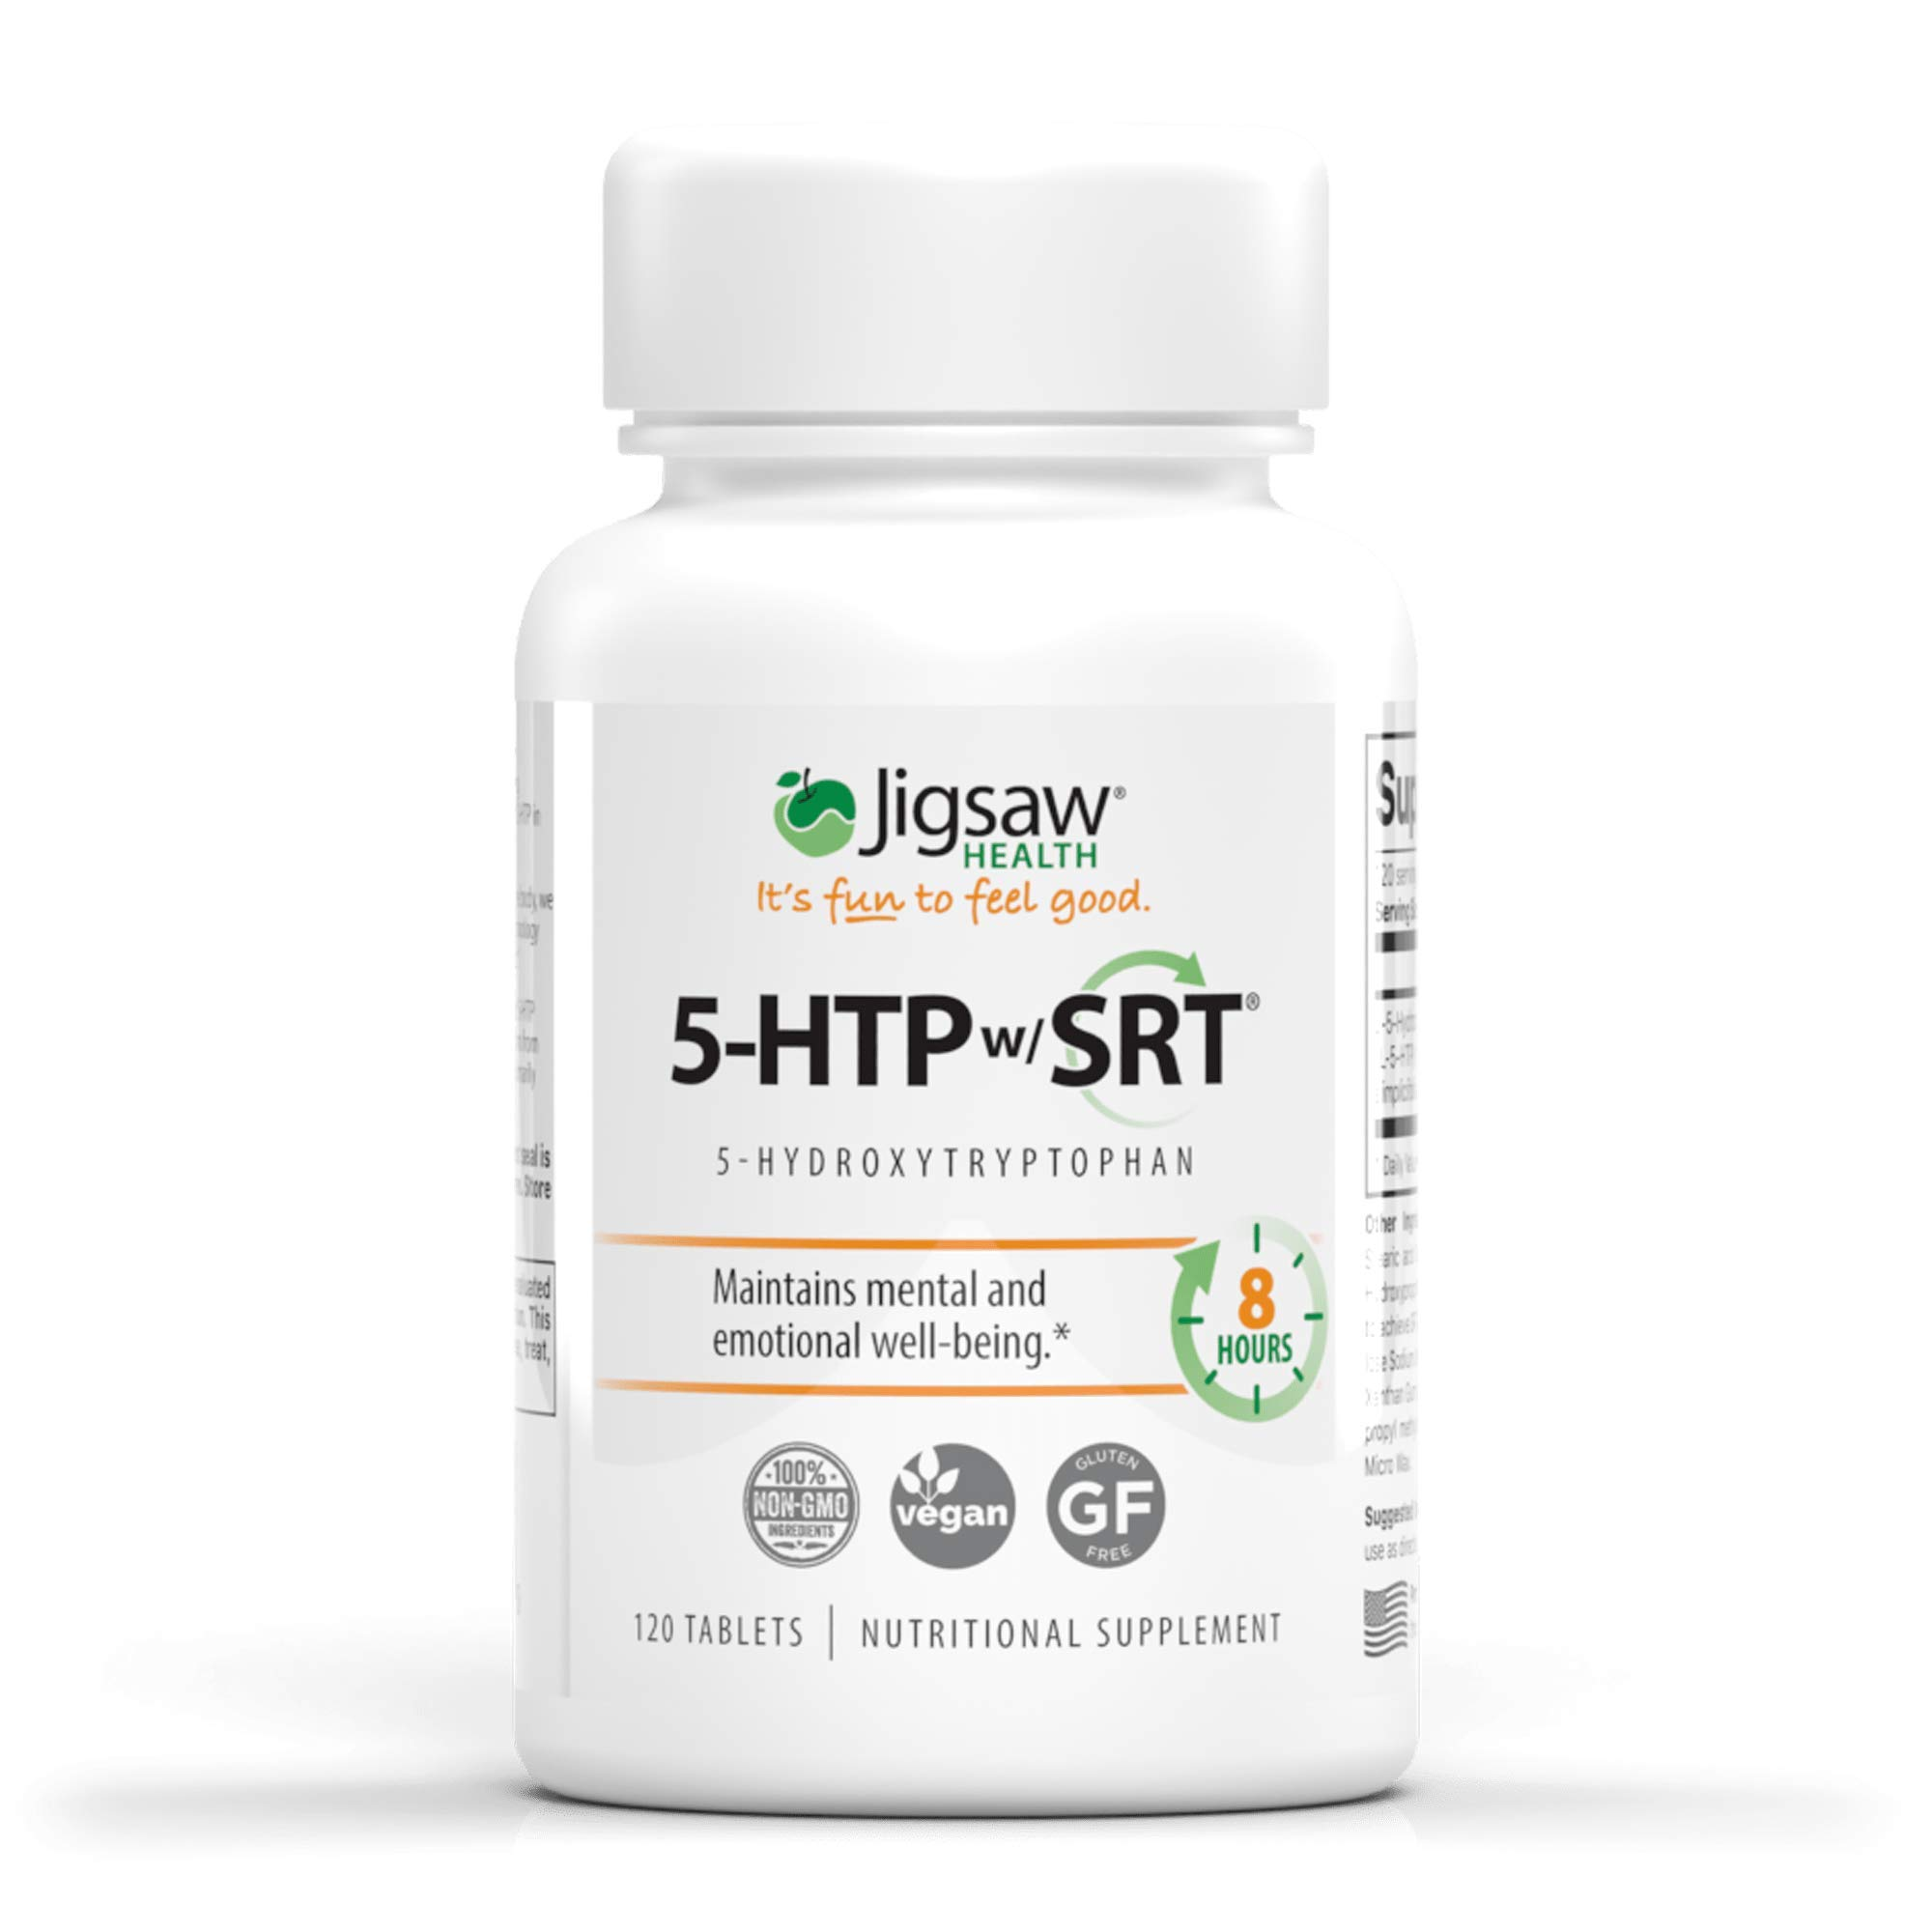 Jigsaw Health - 5-HTP Slow Release - Helps Improve Mood, Emotional Balance, and Sleep Quality utilizing only The purest Form of 5-HTP - 100mg Capsules - 120 Count